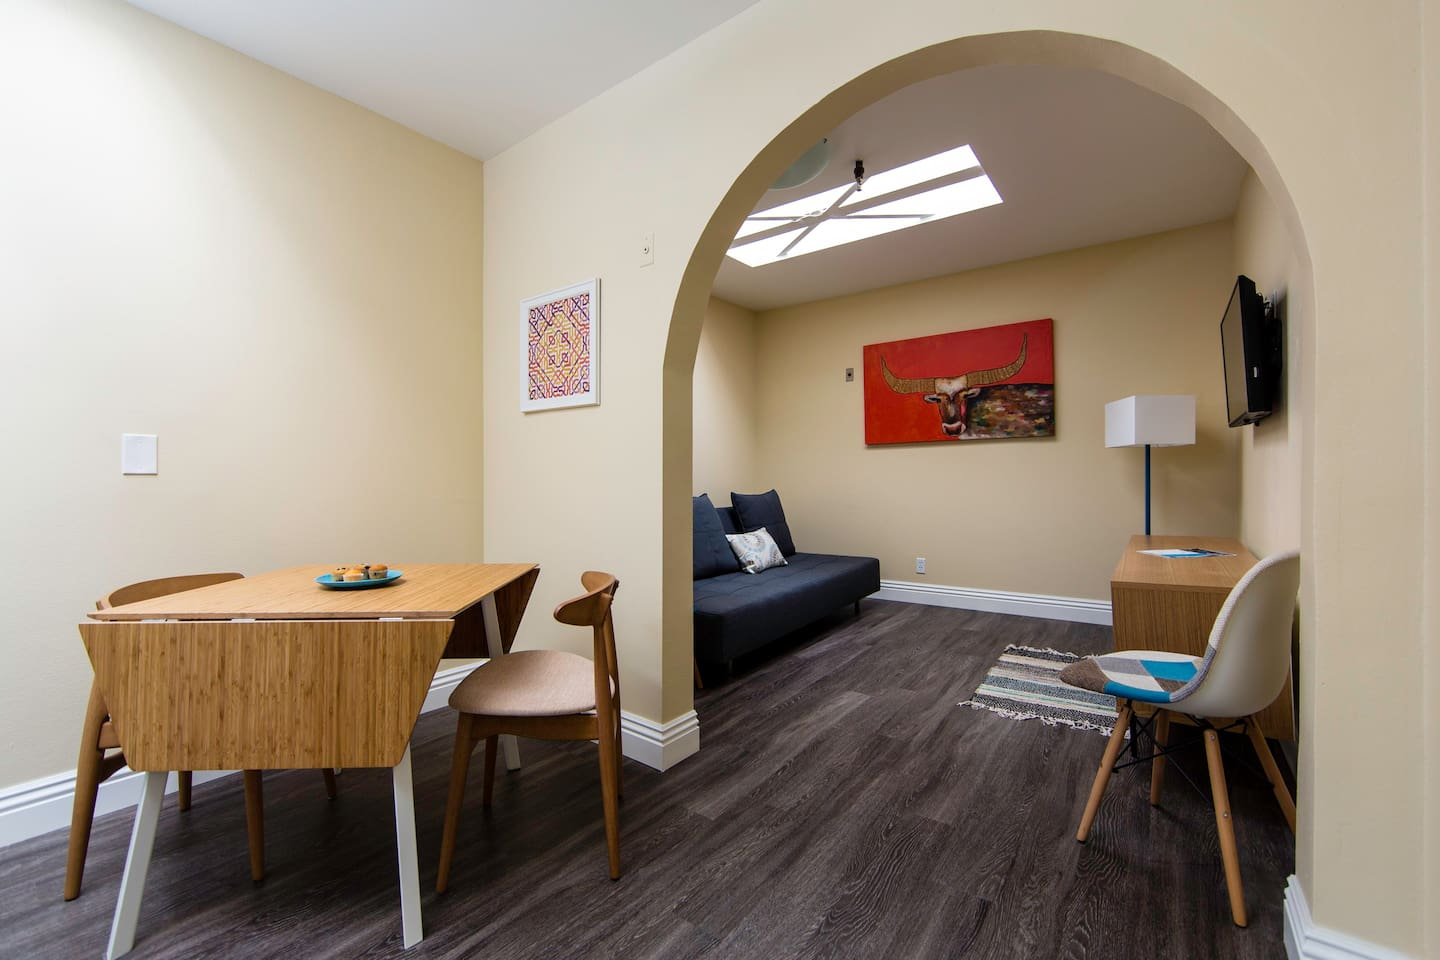 furnished apartments for rent gaslamp san diego images